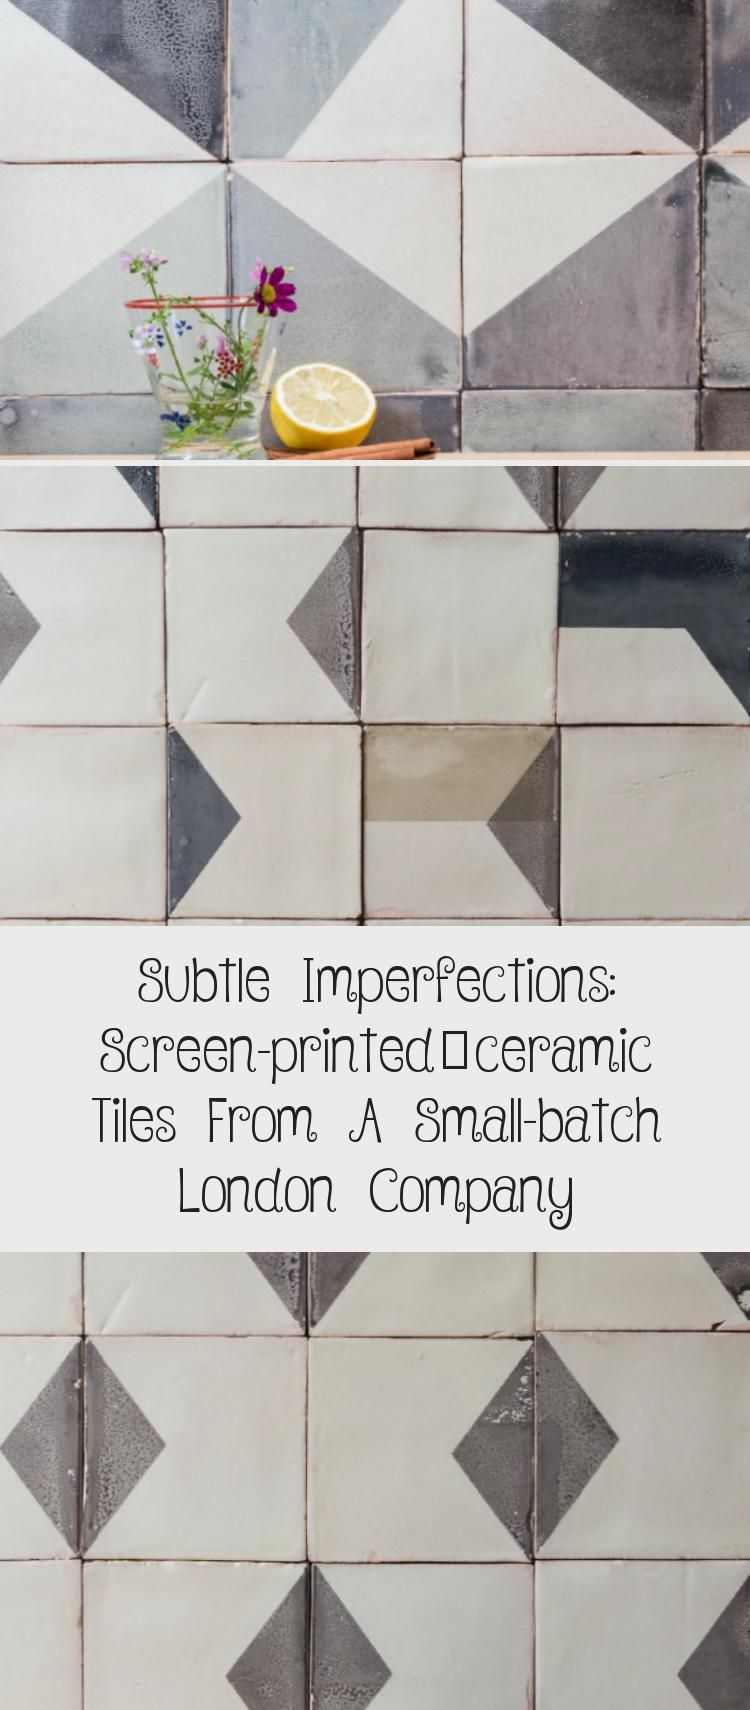 Subtle Imperfections Screen Printed Ceramic Tiles From A Small Batch London Company Tiles Cottage Kitchen Tiles Kitchen Tiles